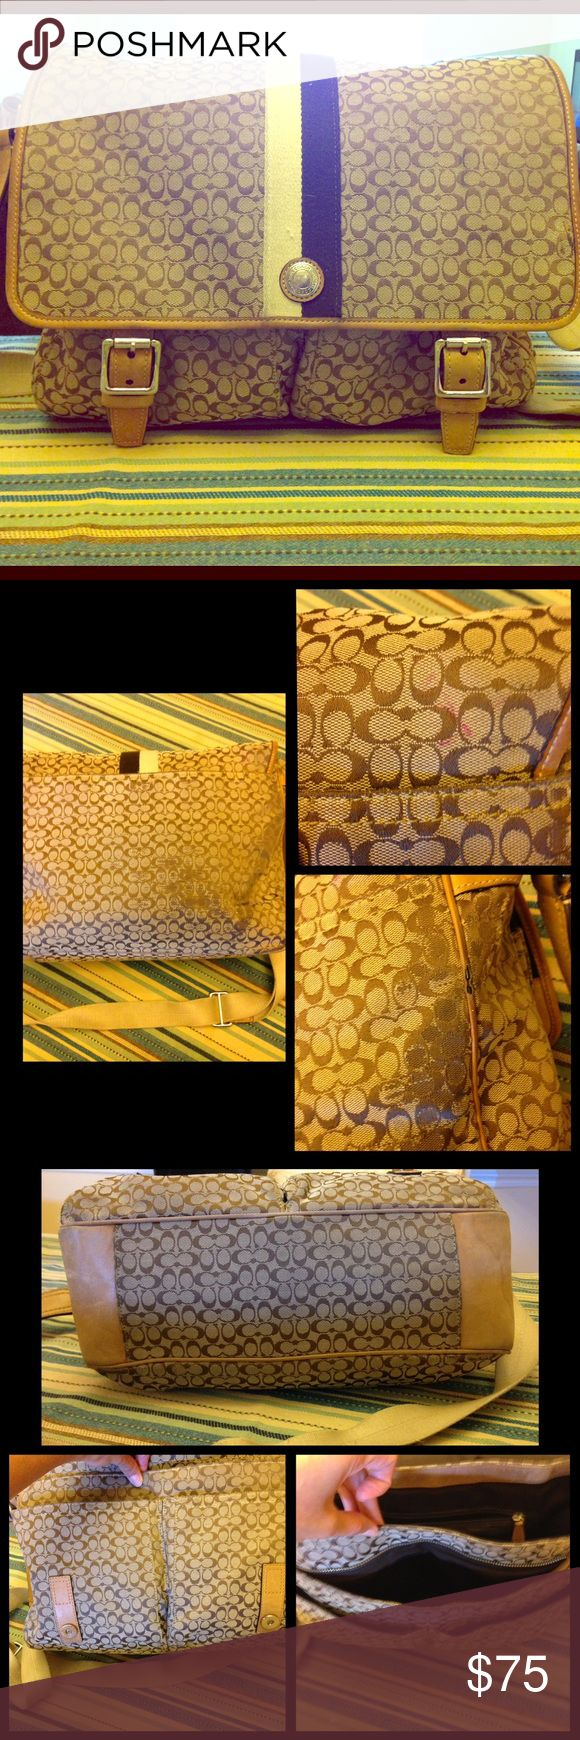 Authentic Coach Messenger Bag Beautiful but very preloved Coach messenger bag.  I have tried to show areas of significant wear and tear- please refer to pictures and don't hesitate to inquire further!  The bag features multiple pockets front, back and interior to house all of your work or school essentials. The back shows most wear- the canvas Signature C's have worn off in some areas; there are pen marks in a few places; and one small area shows wear the leather piping has been damaged…